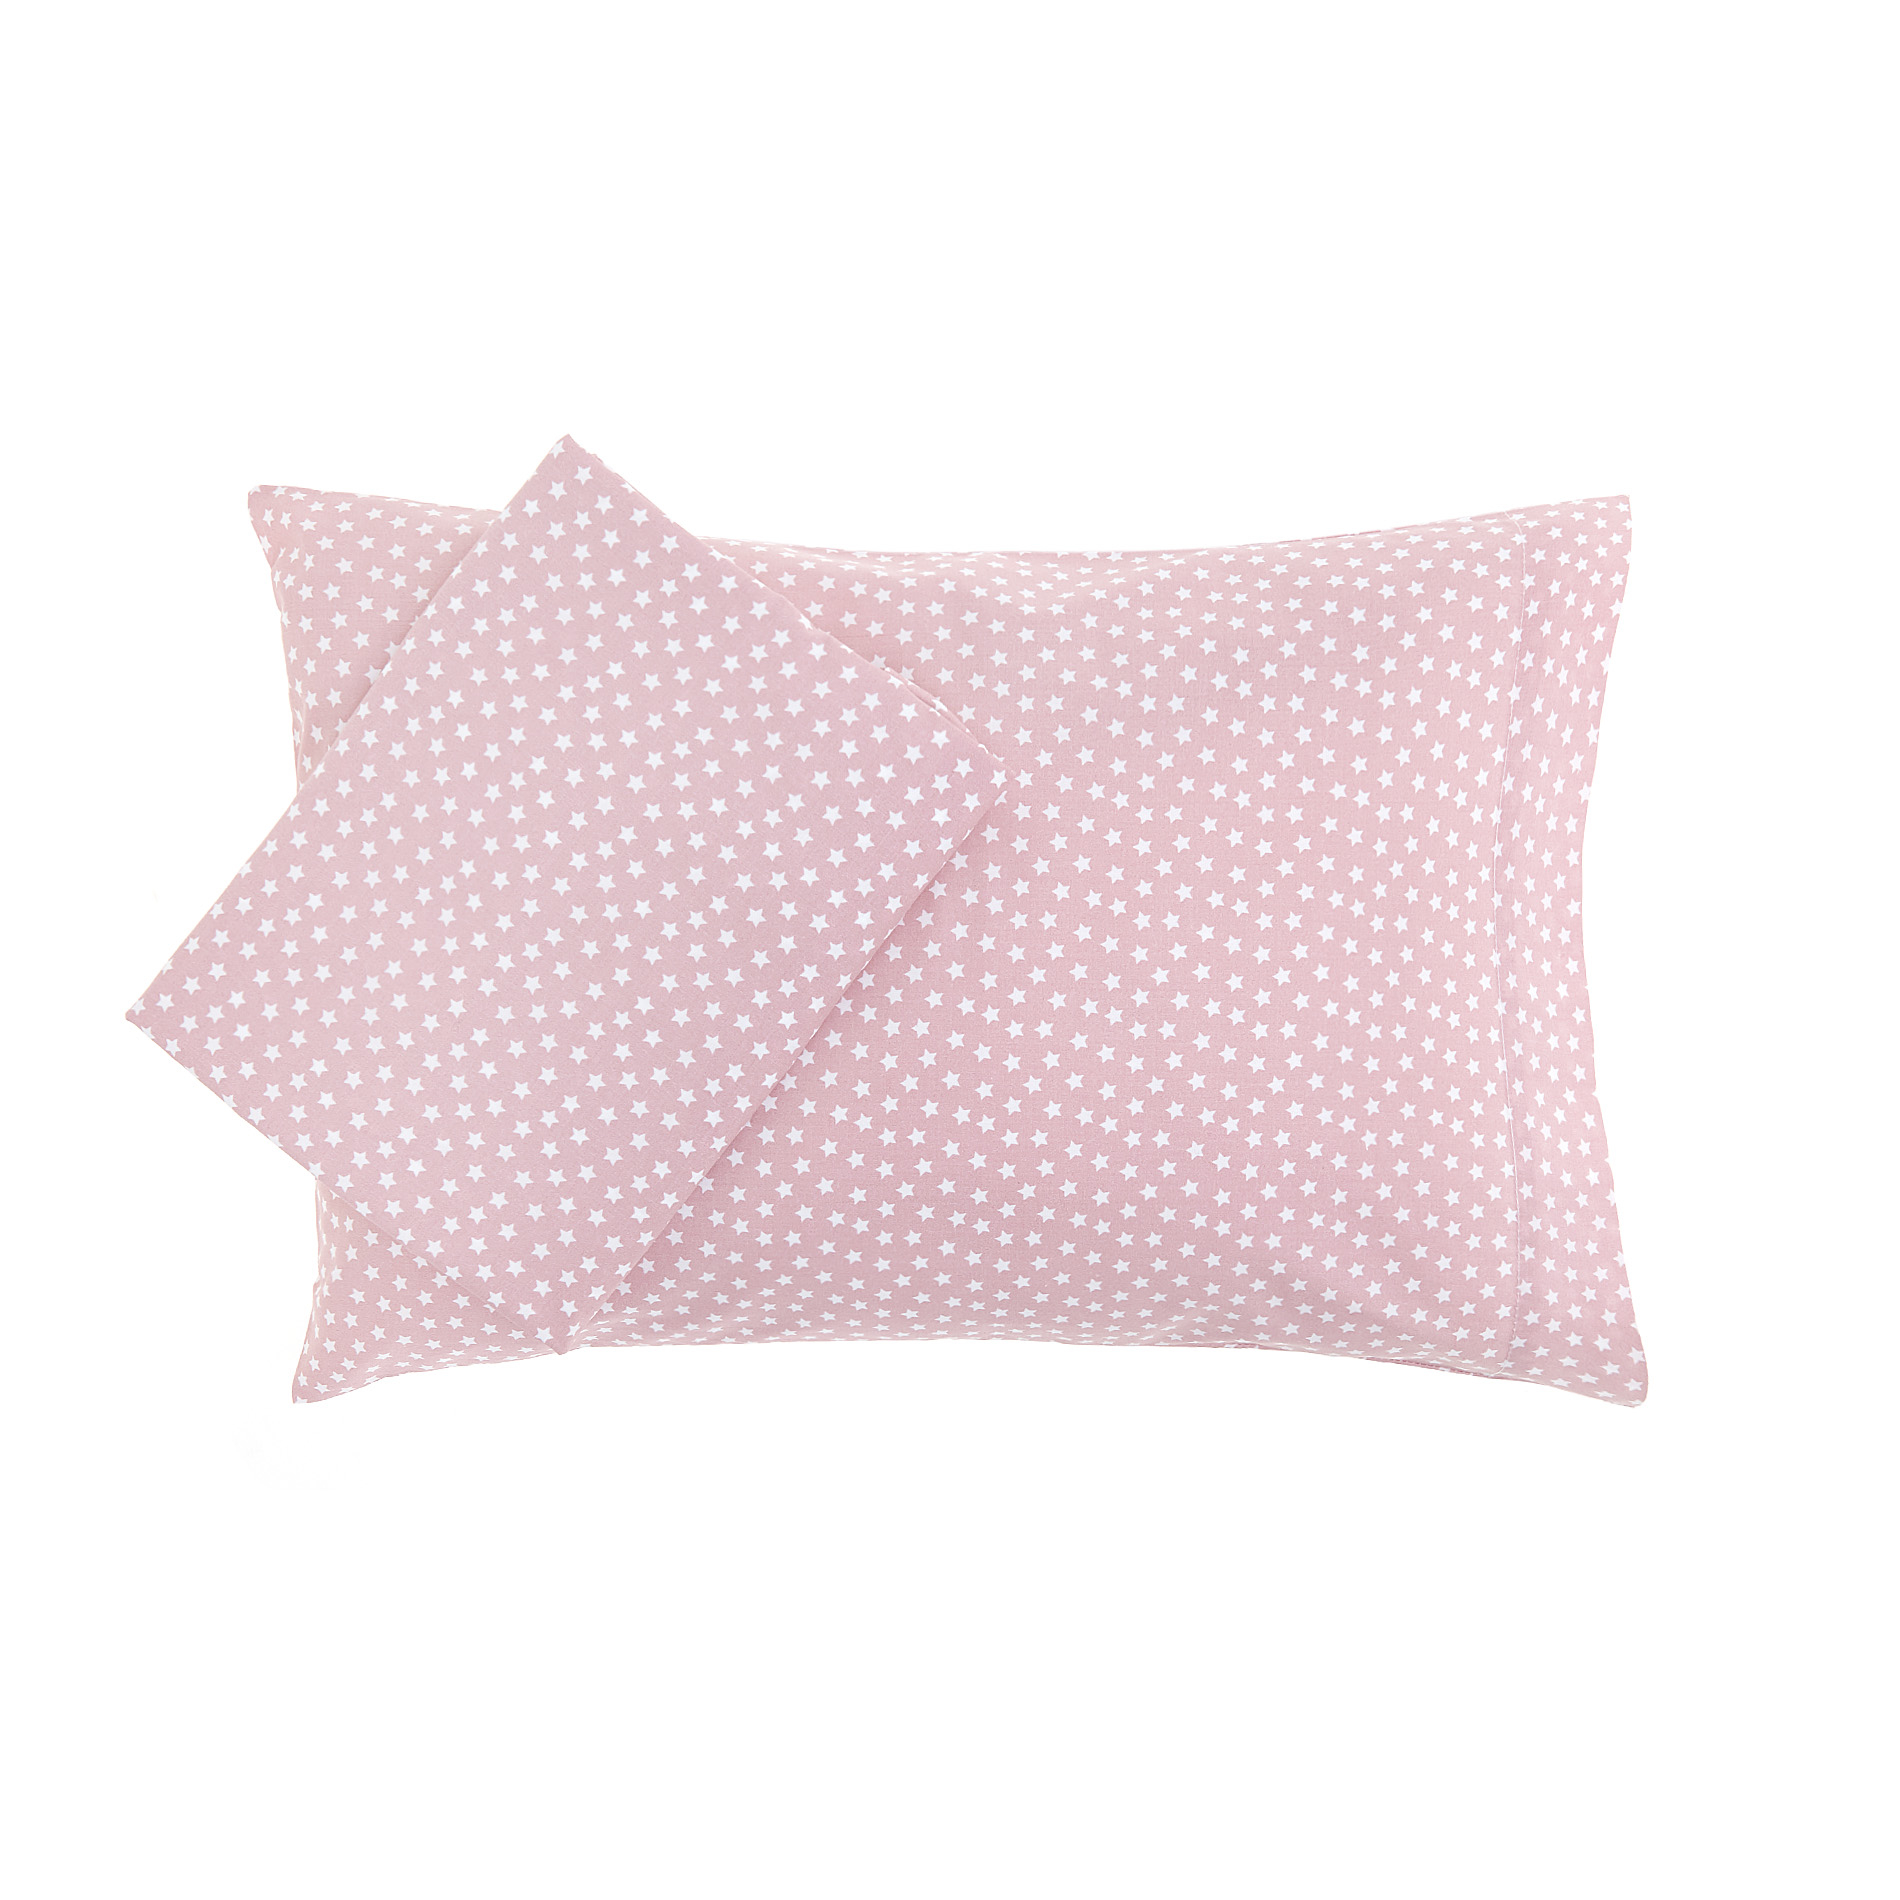 wish star and cover single bedding duvet p upon a pillowcase set